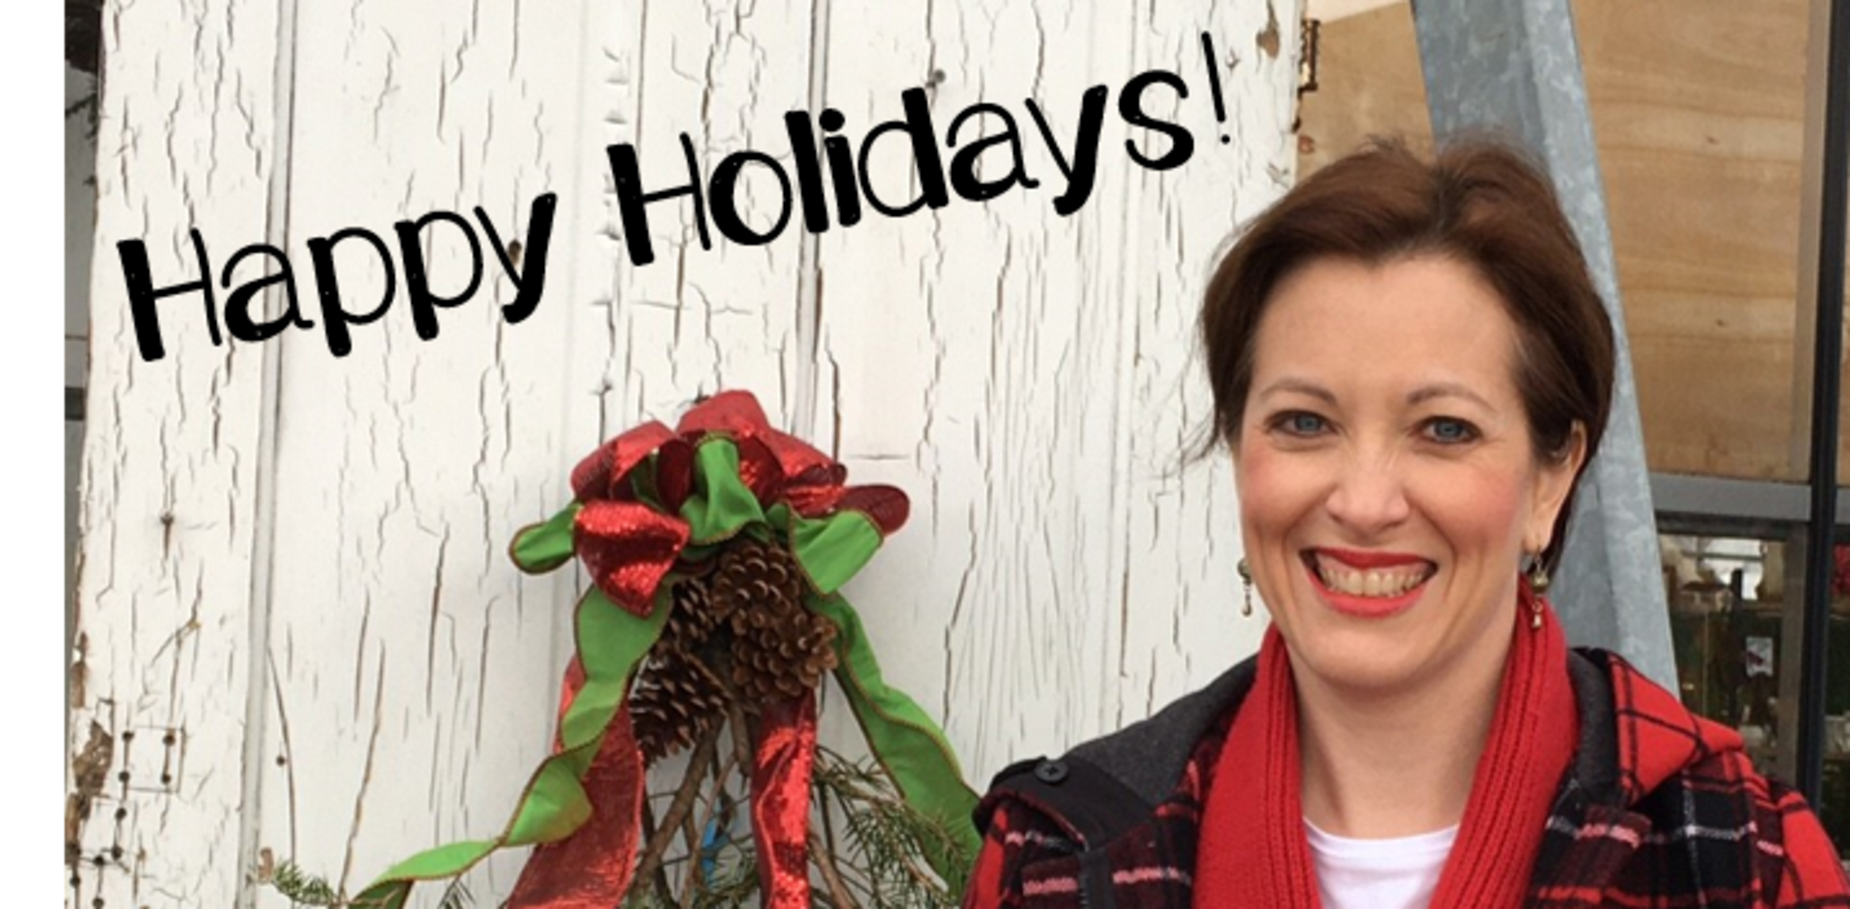 Mrs. Schnepp with holiday message